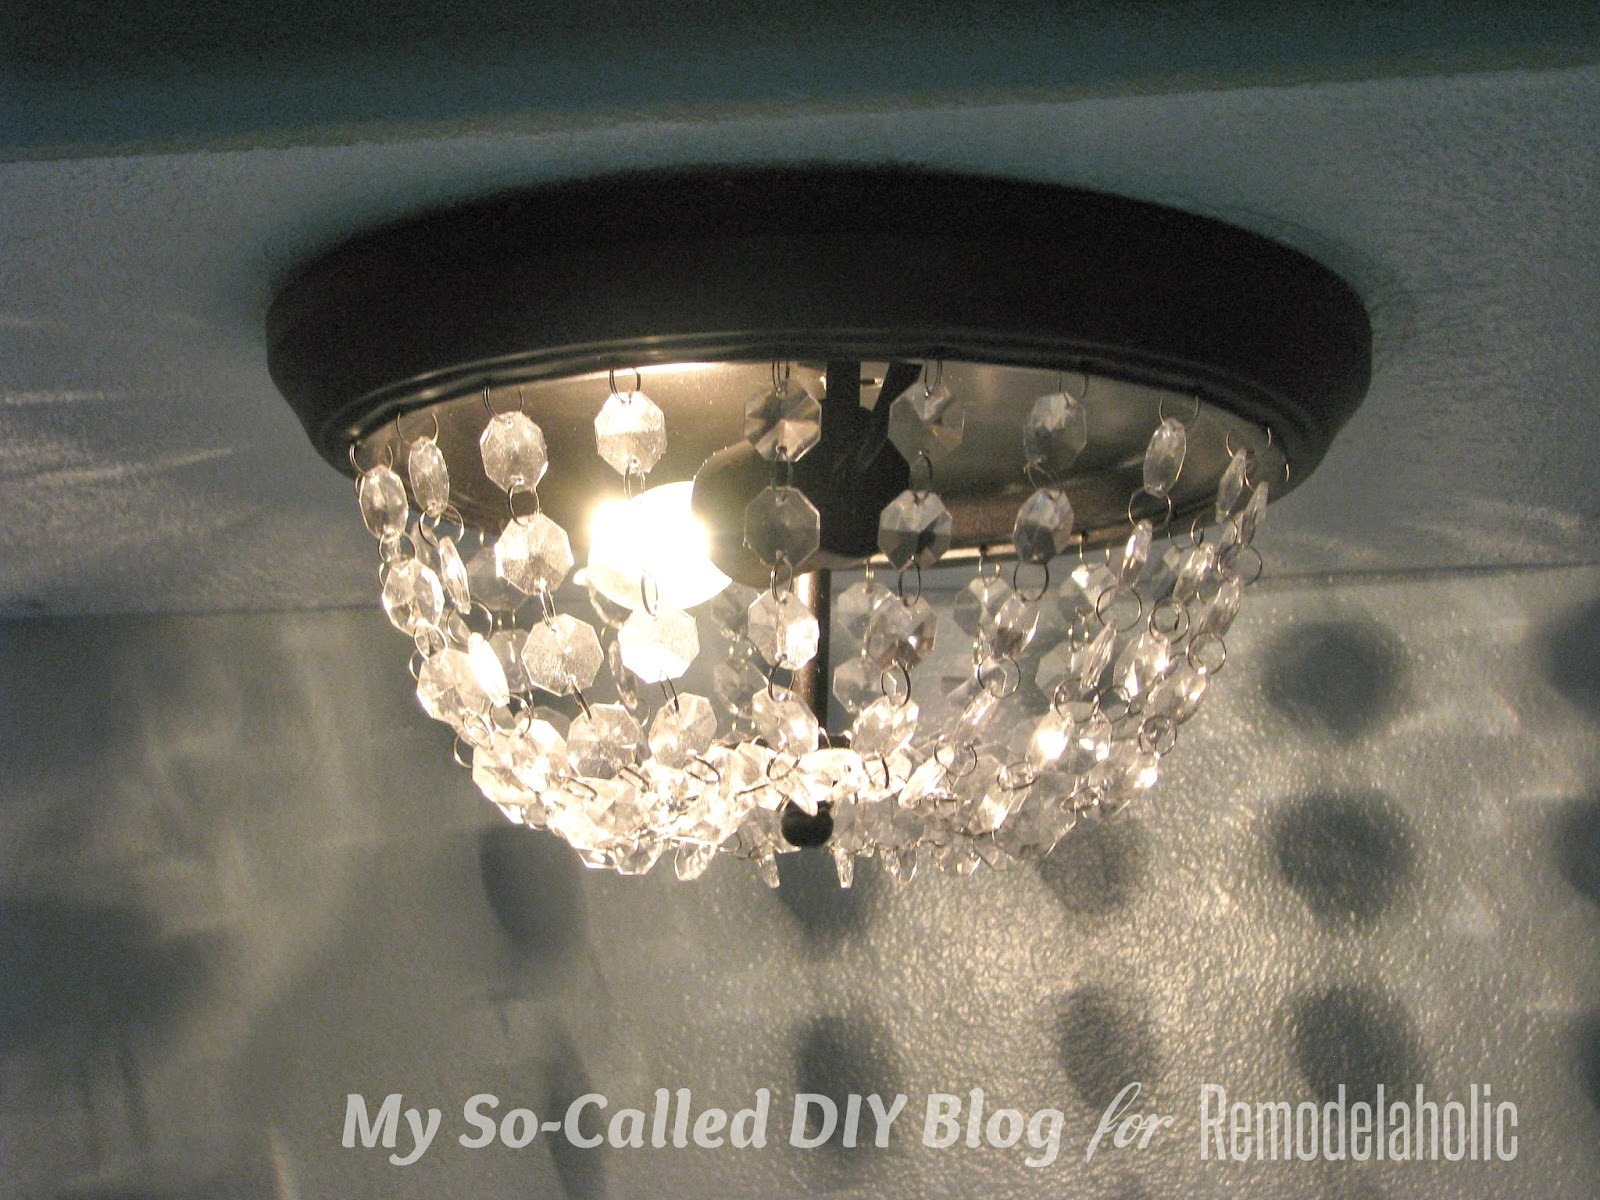 Knockoff Pottery Barn MIA Faceted Crystal Flushmount From A Standard Ceiling  Light   My So